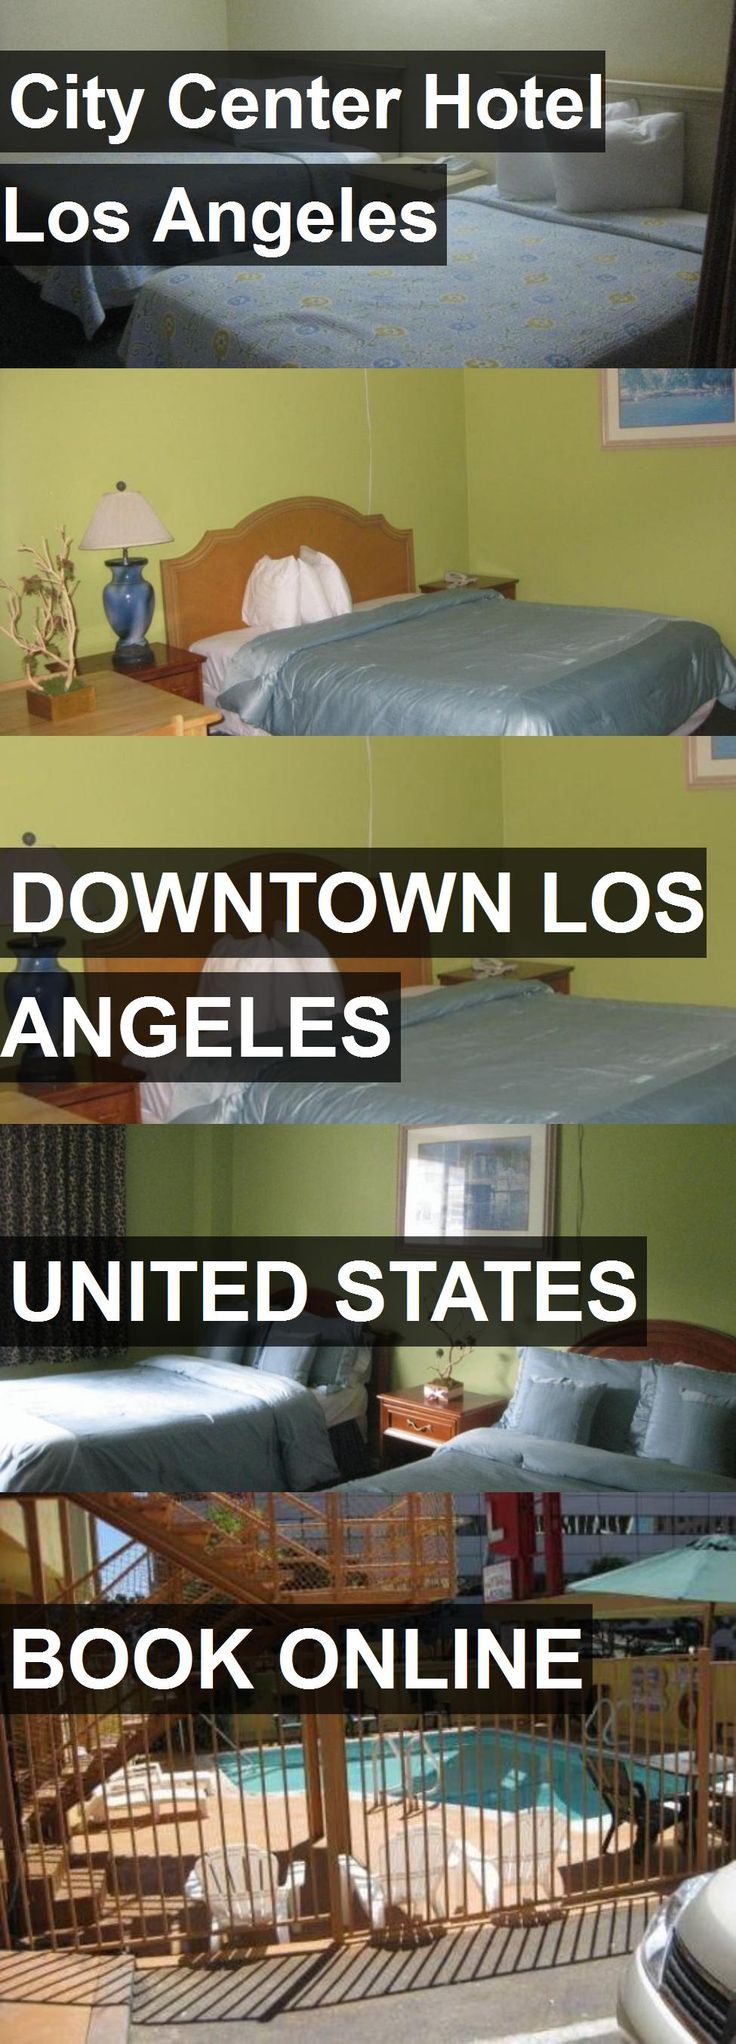 City Center Hotel Los Angeles in Downtown Los Angeles, United States. For more information, photos, reviews and best prices please follow the link. #UnitedStates #DowntownLosAngeles #travel #vacation #hotel